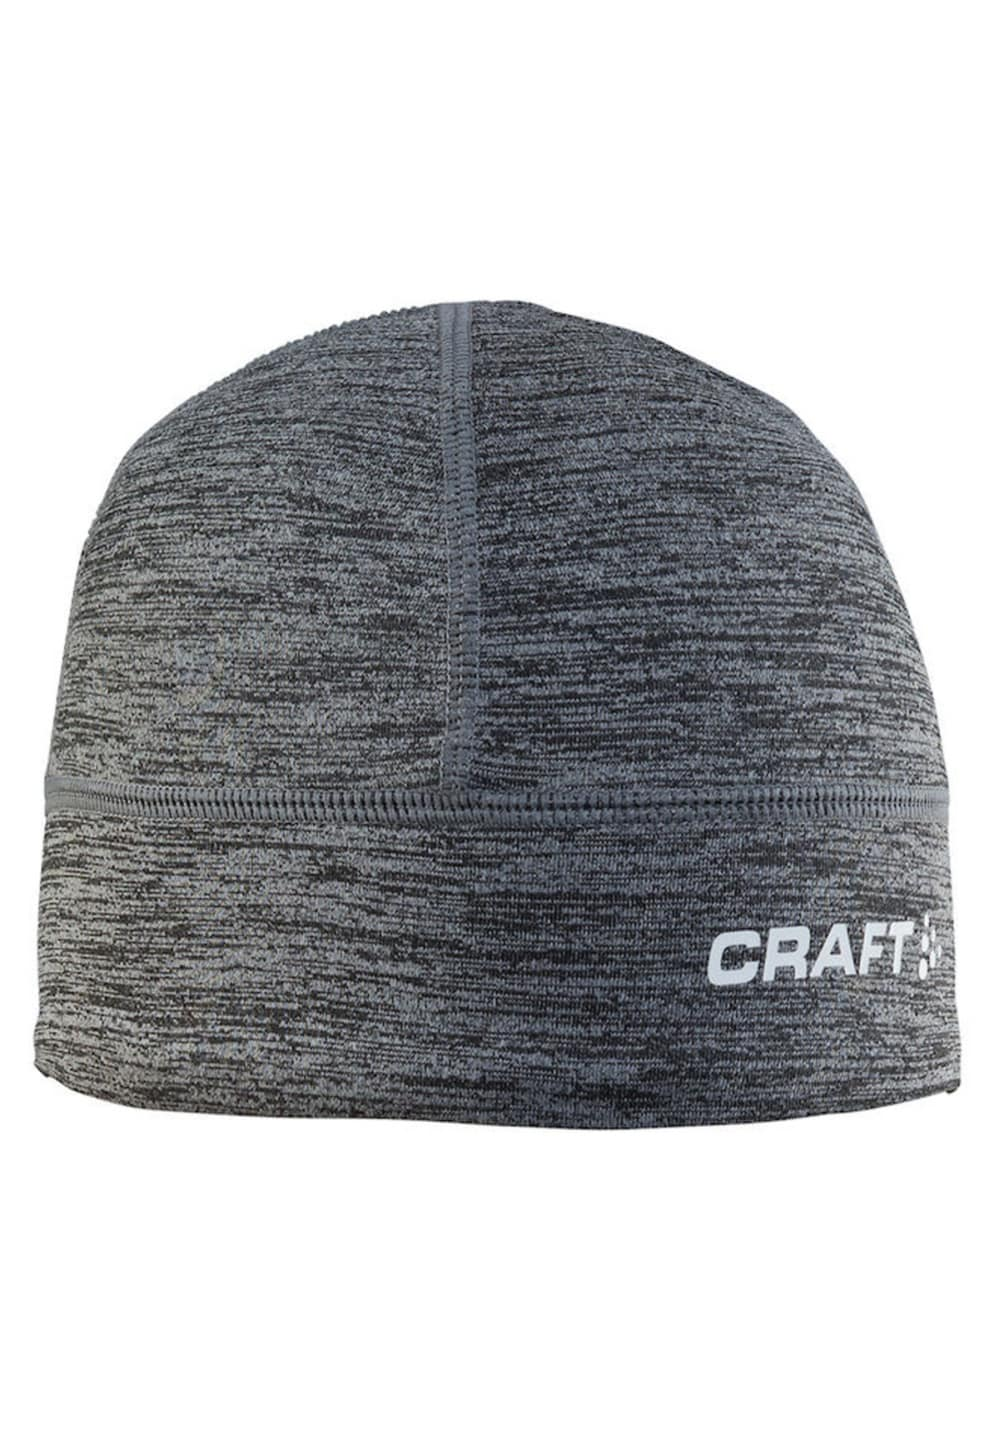 Craft Light Thermal Hat Kopfbedeckung - Grau, Gr. S/M